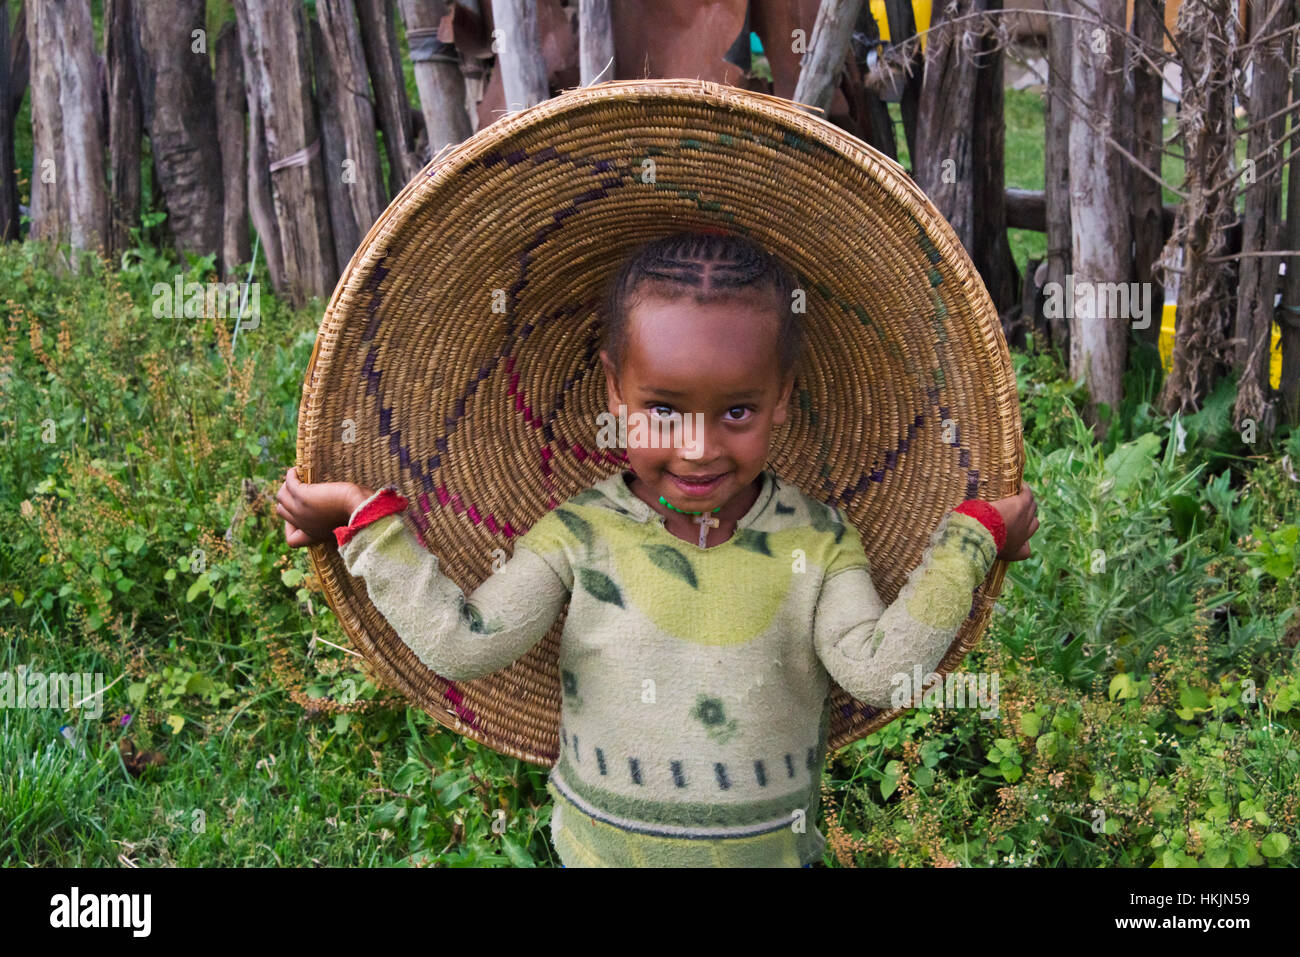 Kid wearing the cover of injera flat bread container, Addis Ababa, Ethiopia - Stock Image